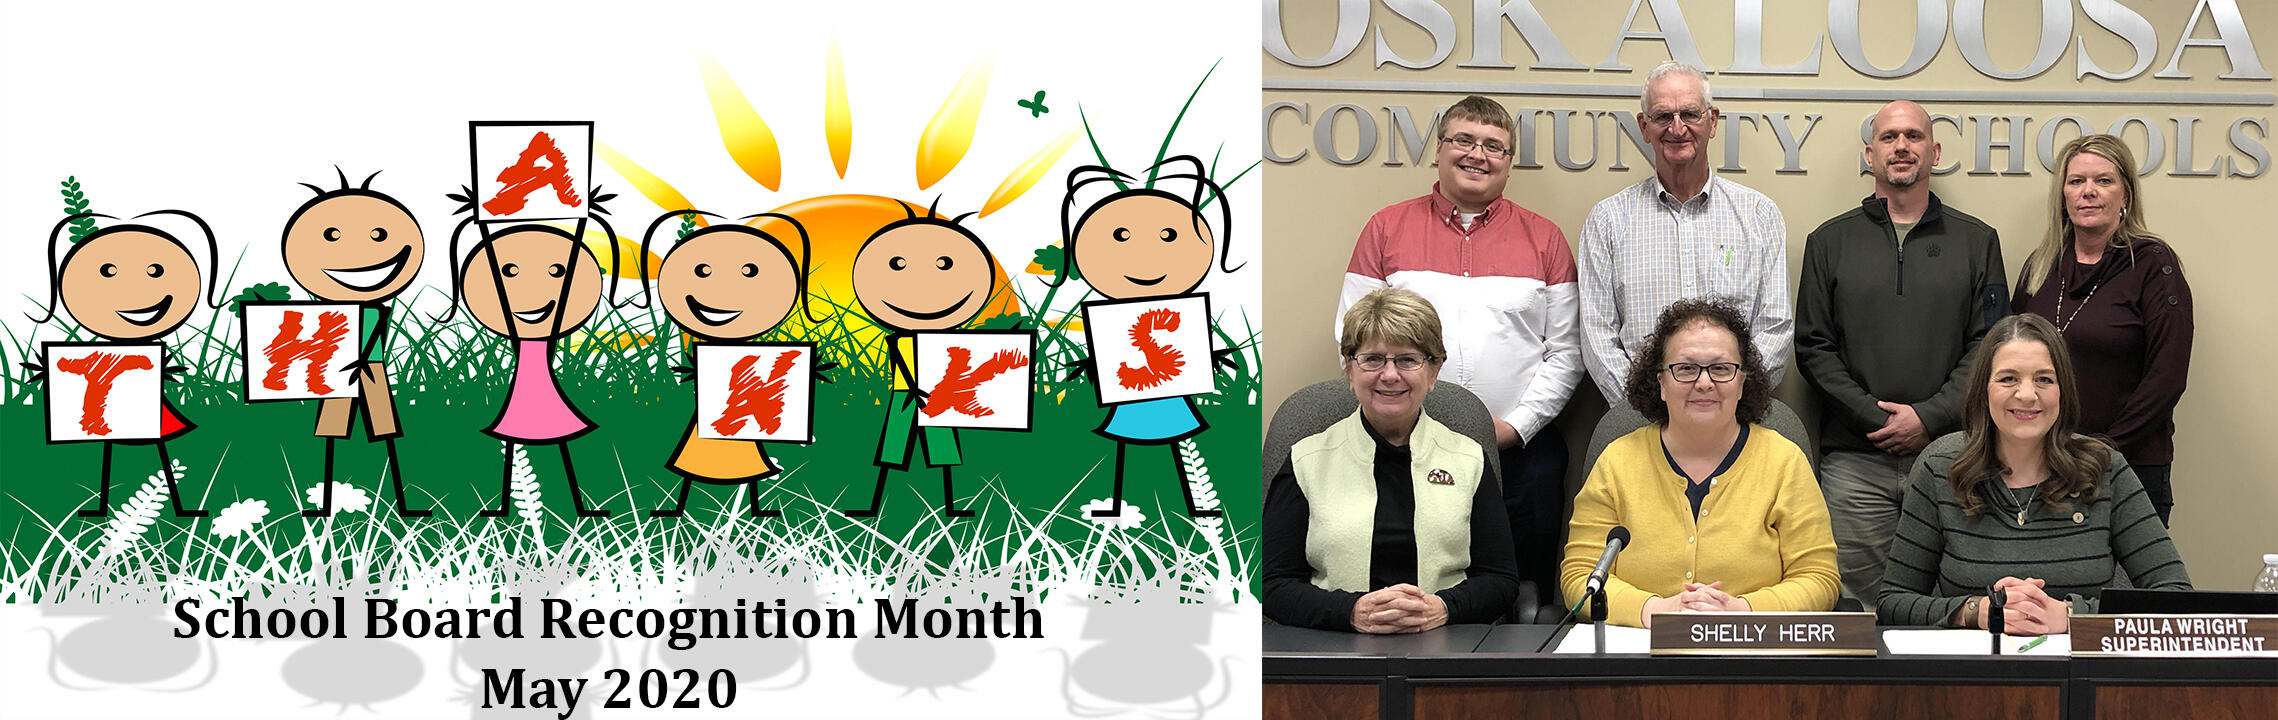 Thank you School Board Members - School Board Recognition Month May 2020 with photo of board members